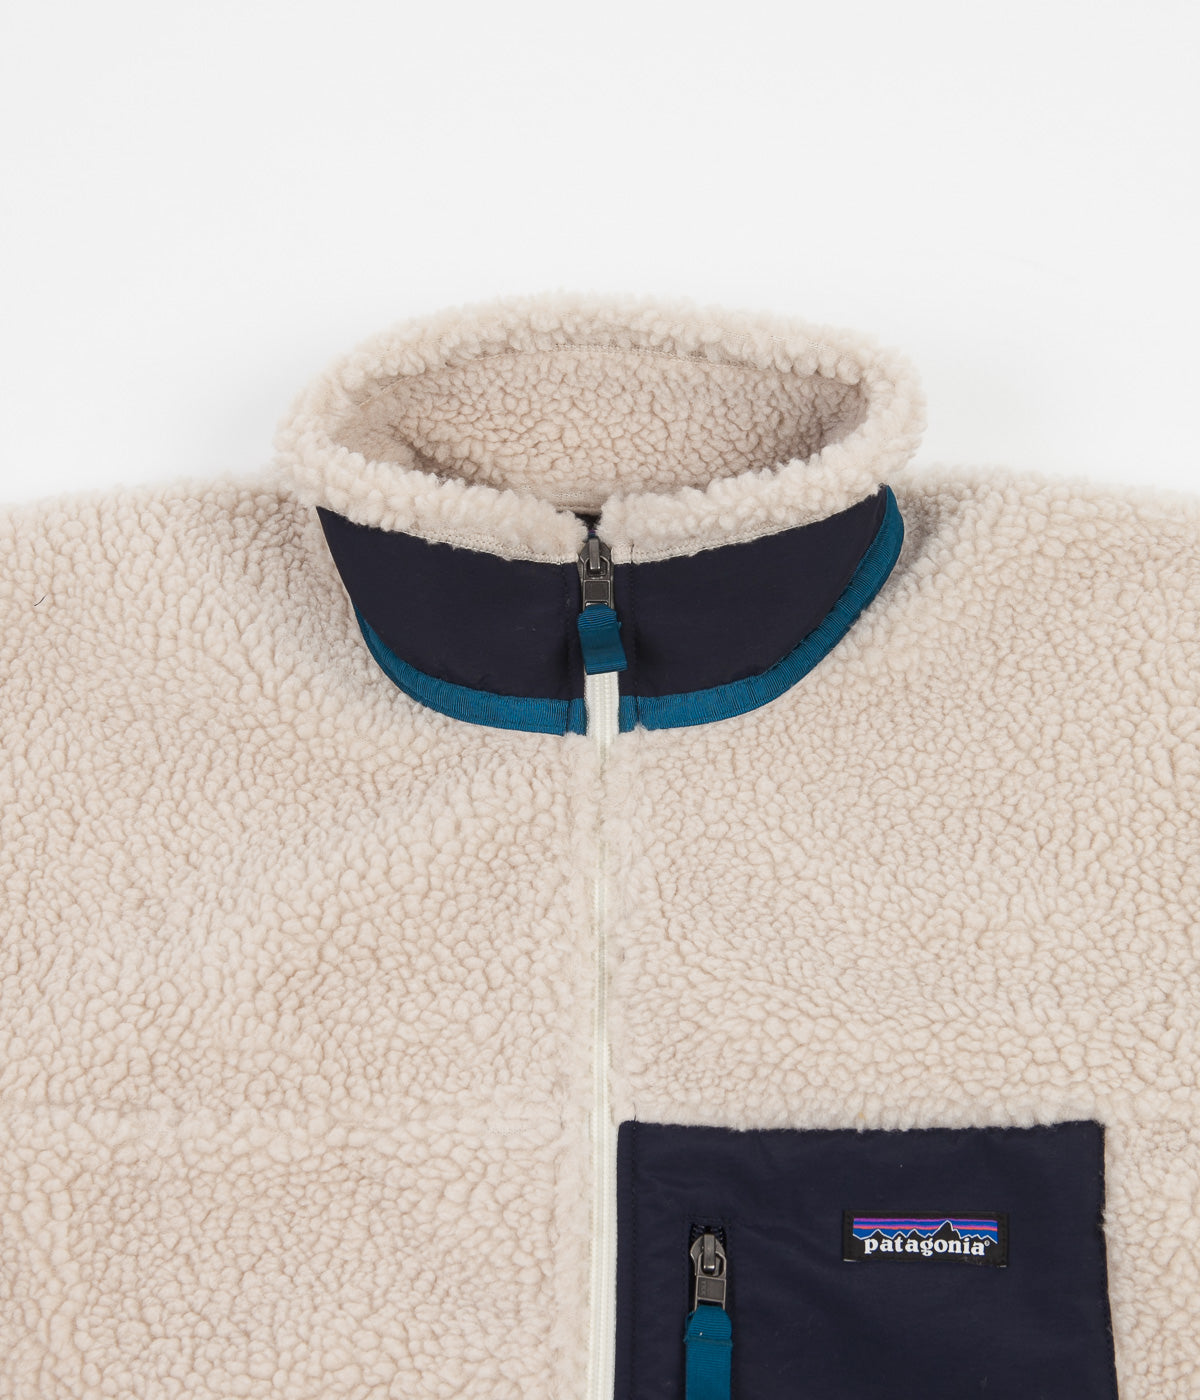 Patagonia Classic Retro-X Jacket - Natural | Always in Colour